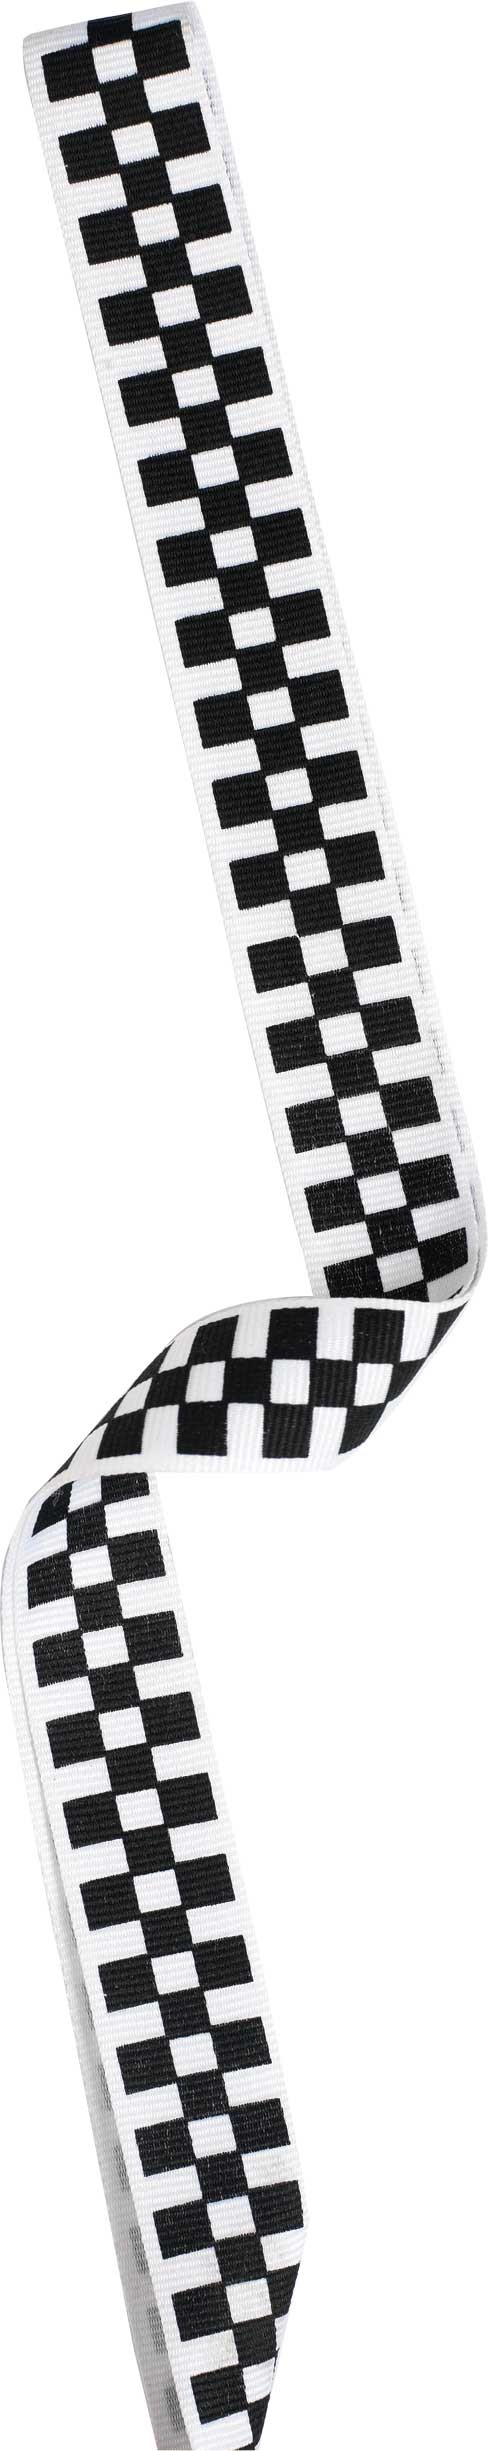 Black&White Chequered